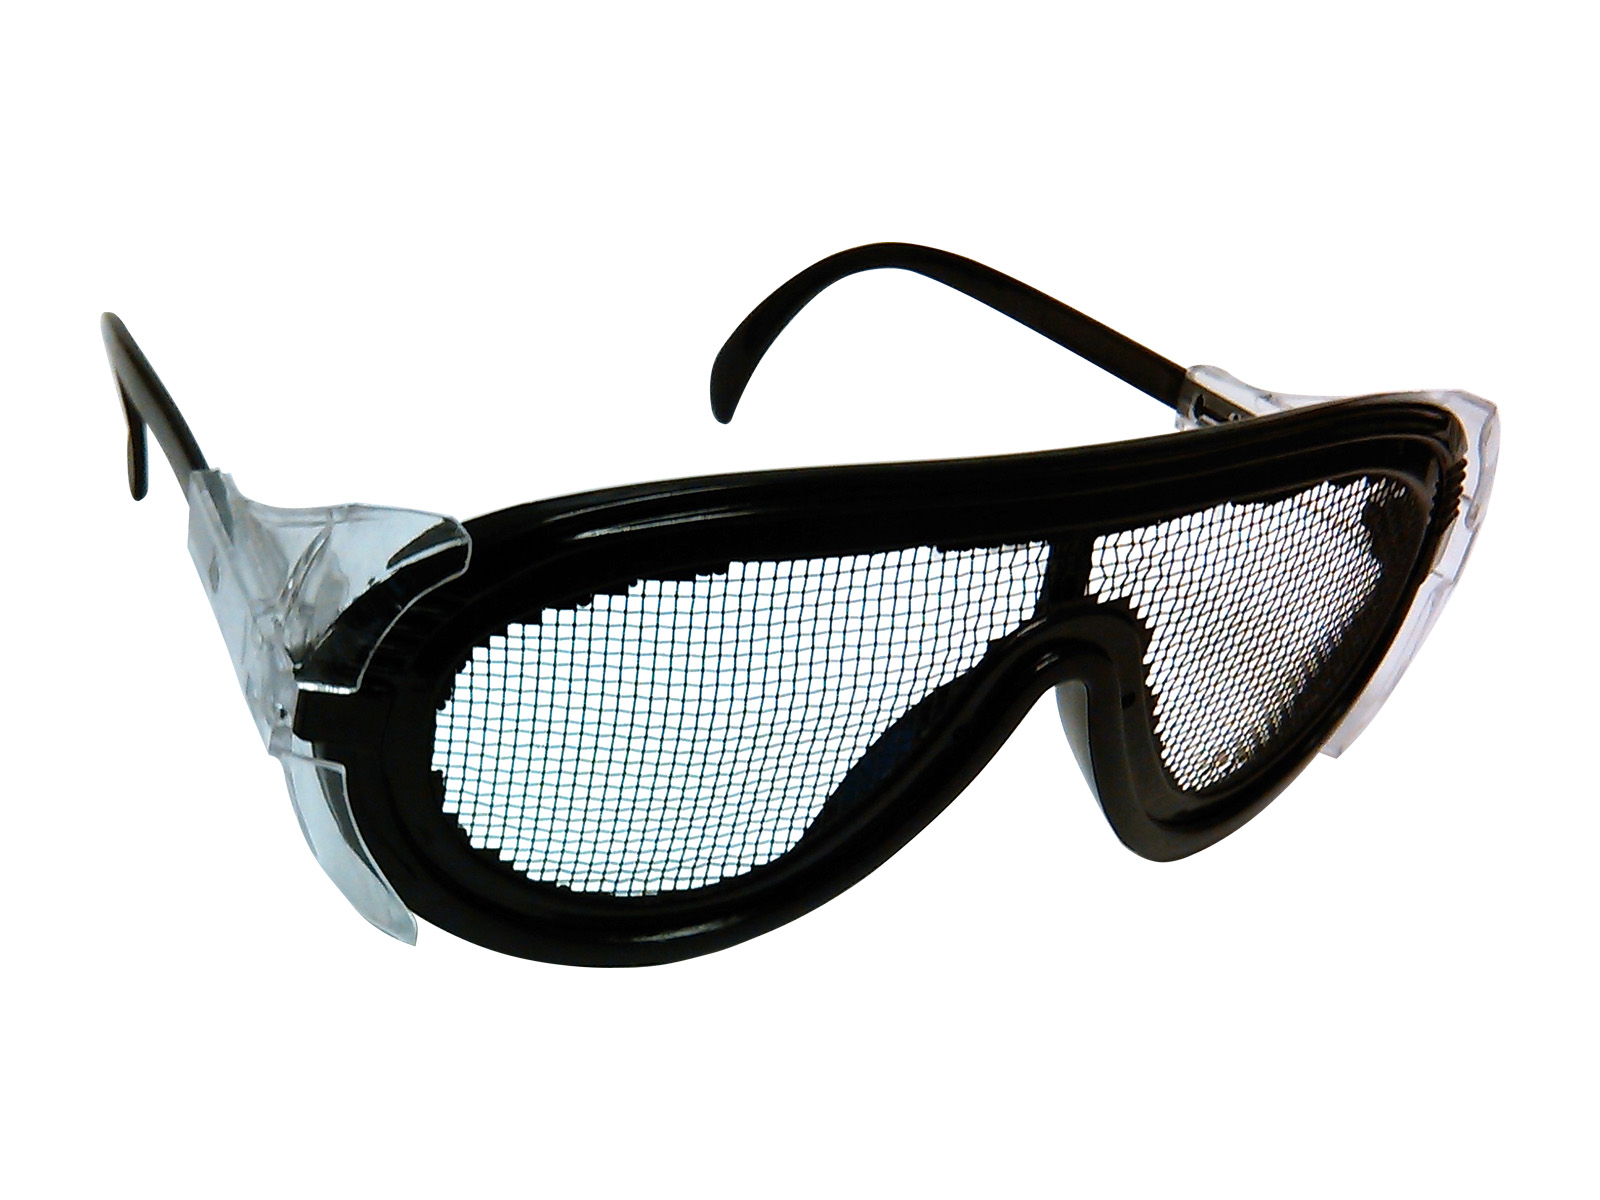 Safety Glasses SG2635 Wire Mesh Adjustable, Scratch and Fog Free, Eye Protection